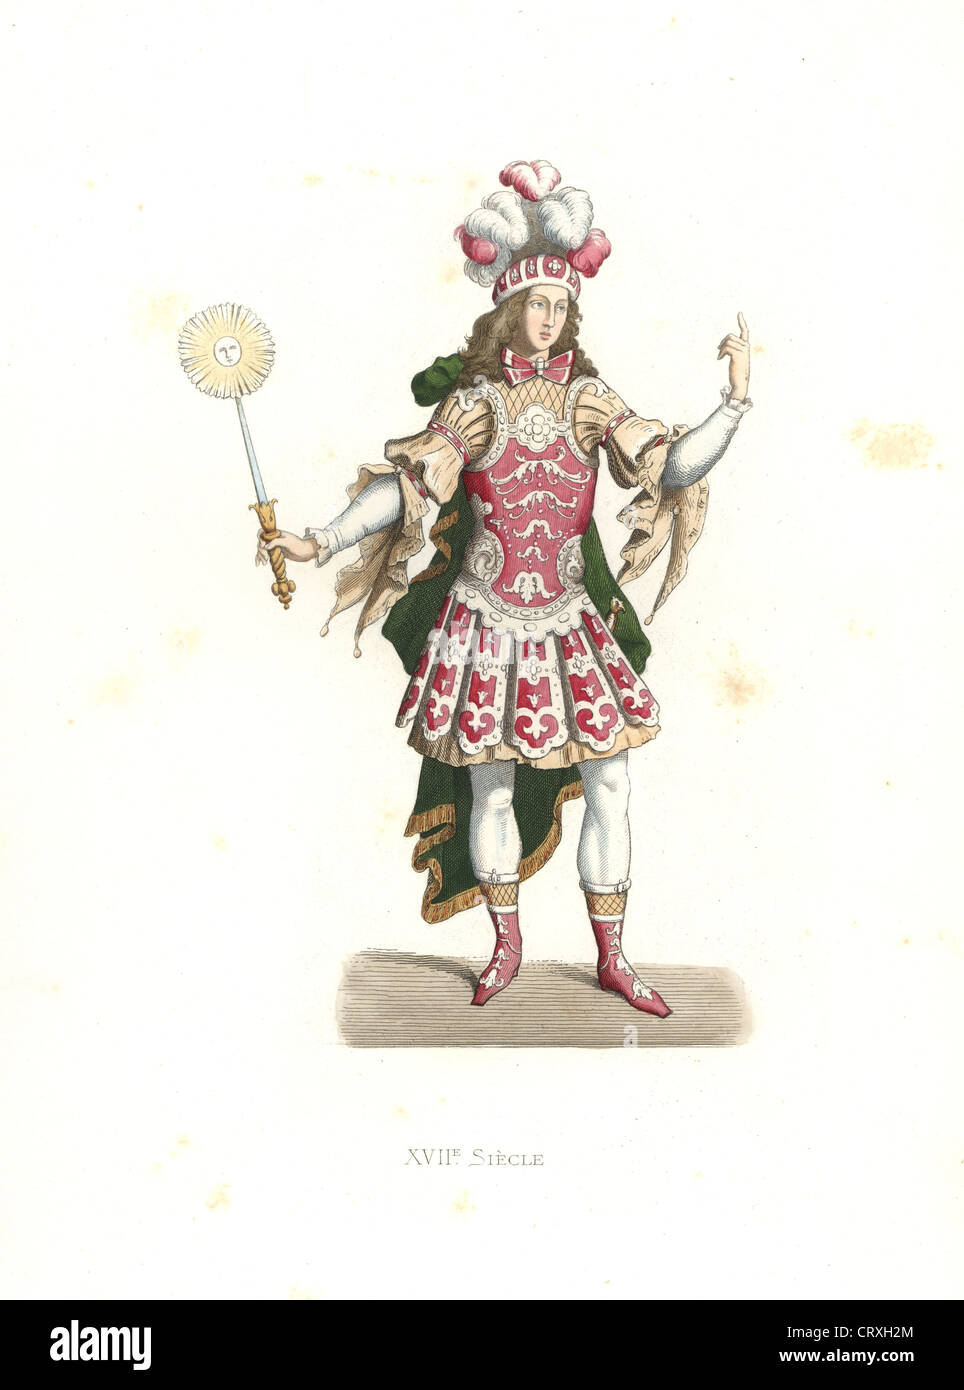 Louis Xiv The Sun King In Ballet Costume 17th Century Stock Photo Alamy